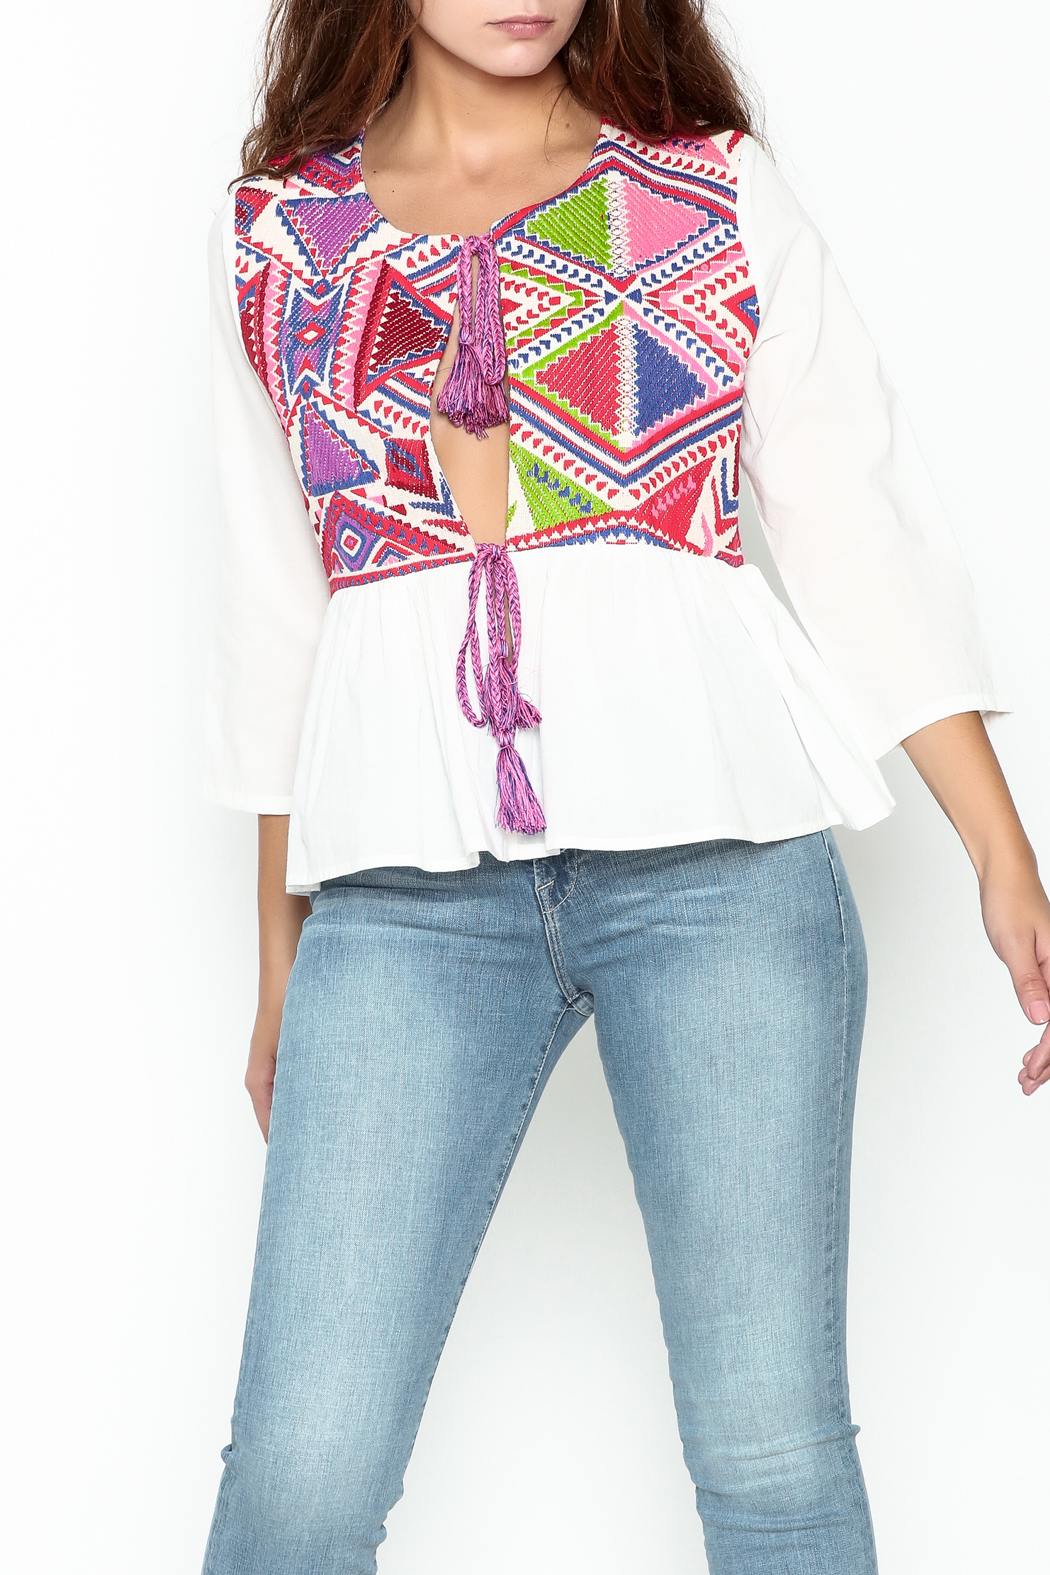 Velzera Colorful Embroidered Top - Main Image